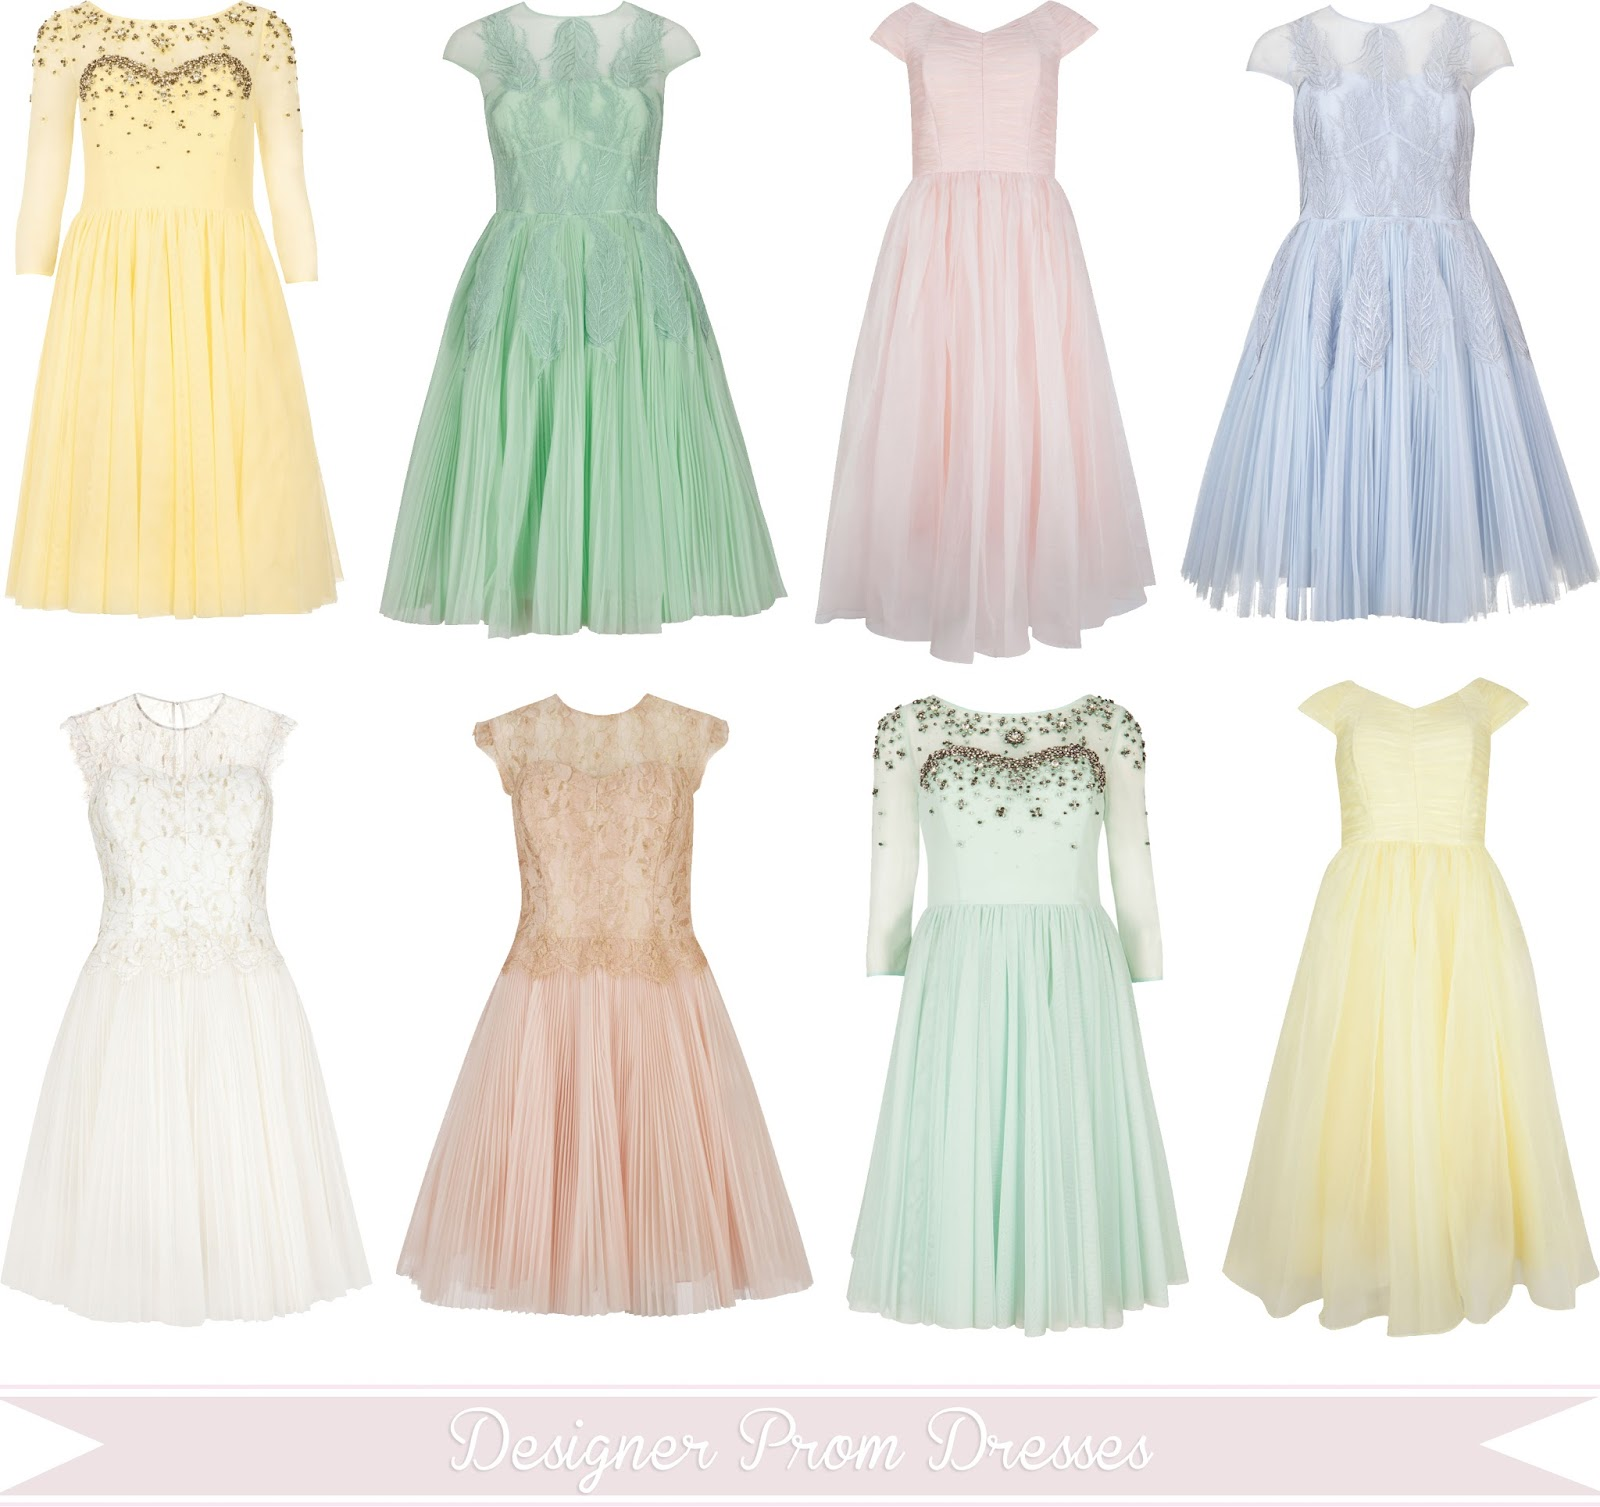 designer prom dresses, dresses for prom, pastel coloured dresses